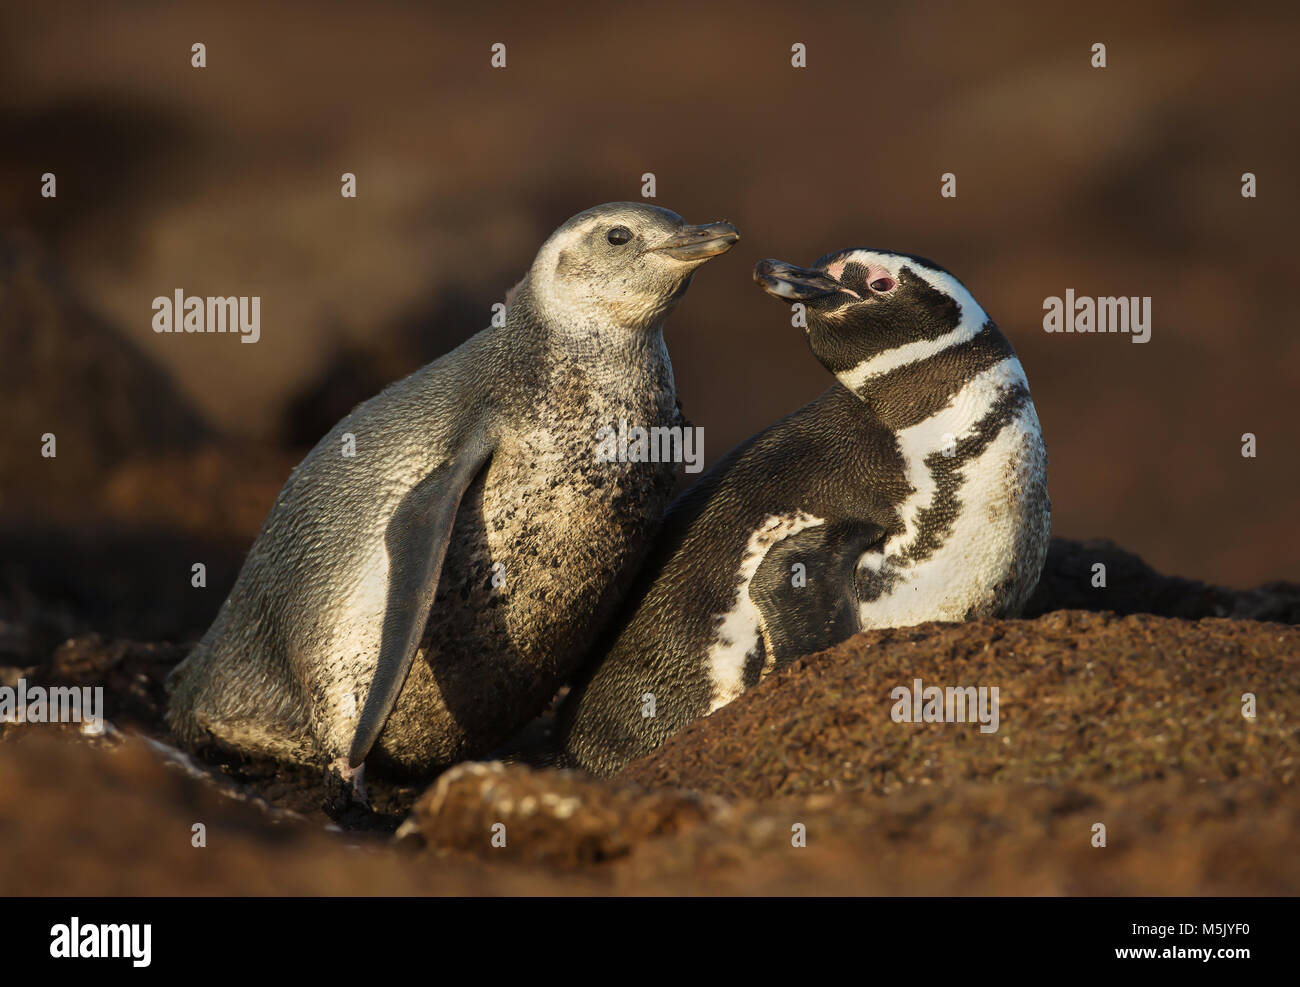 Close up of a Magellanic penguin (Spheniscus magellanicus) with a chick by a burrow, summer in Falkland islands. - Stock Image